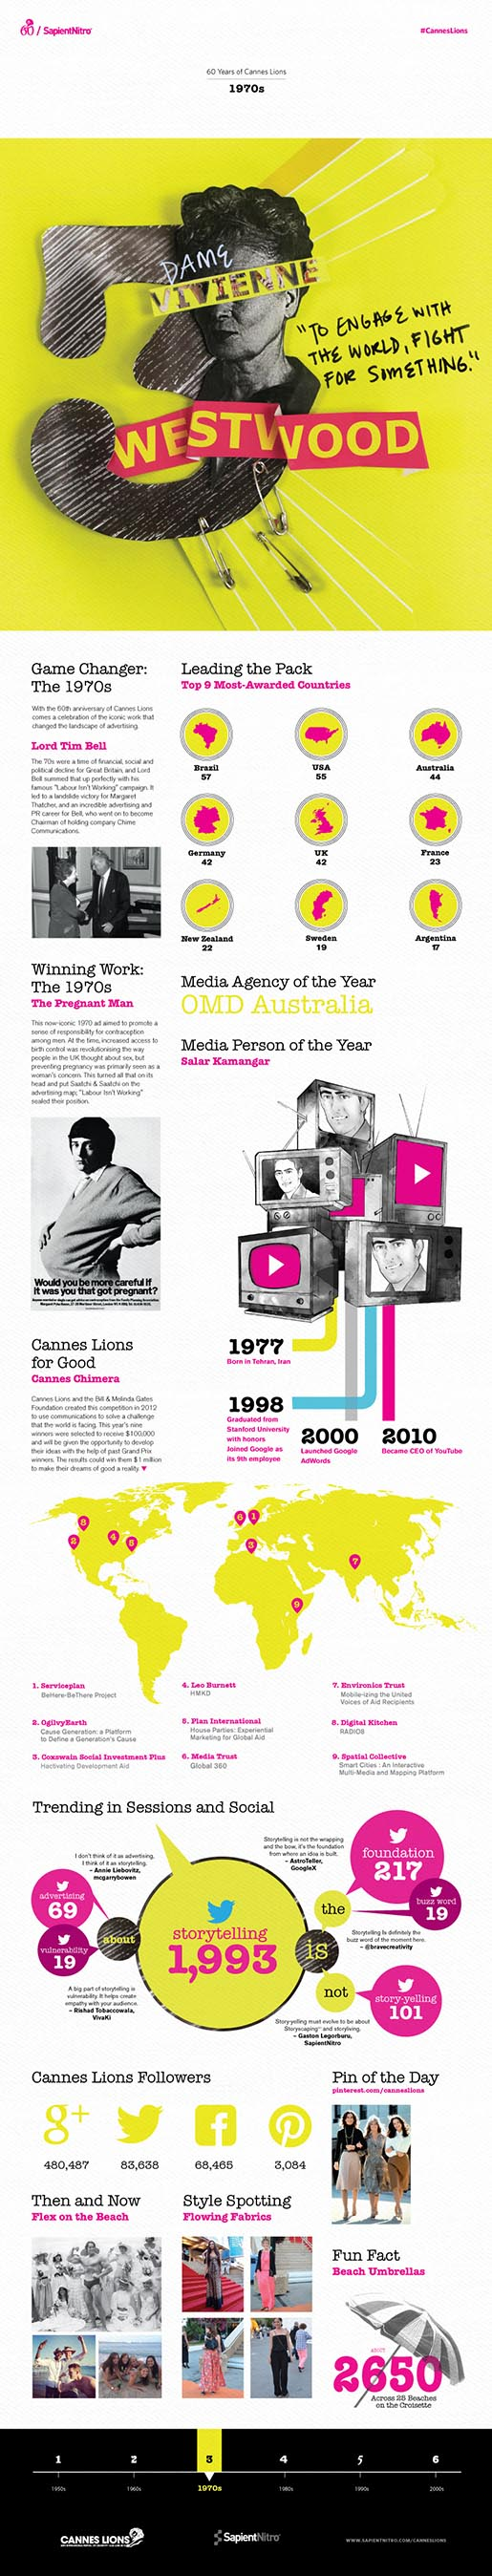 Cannes Lions Infographic 1970s